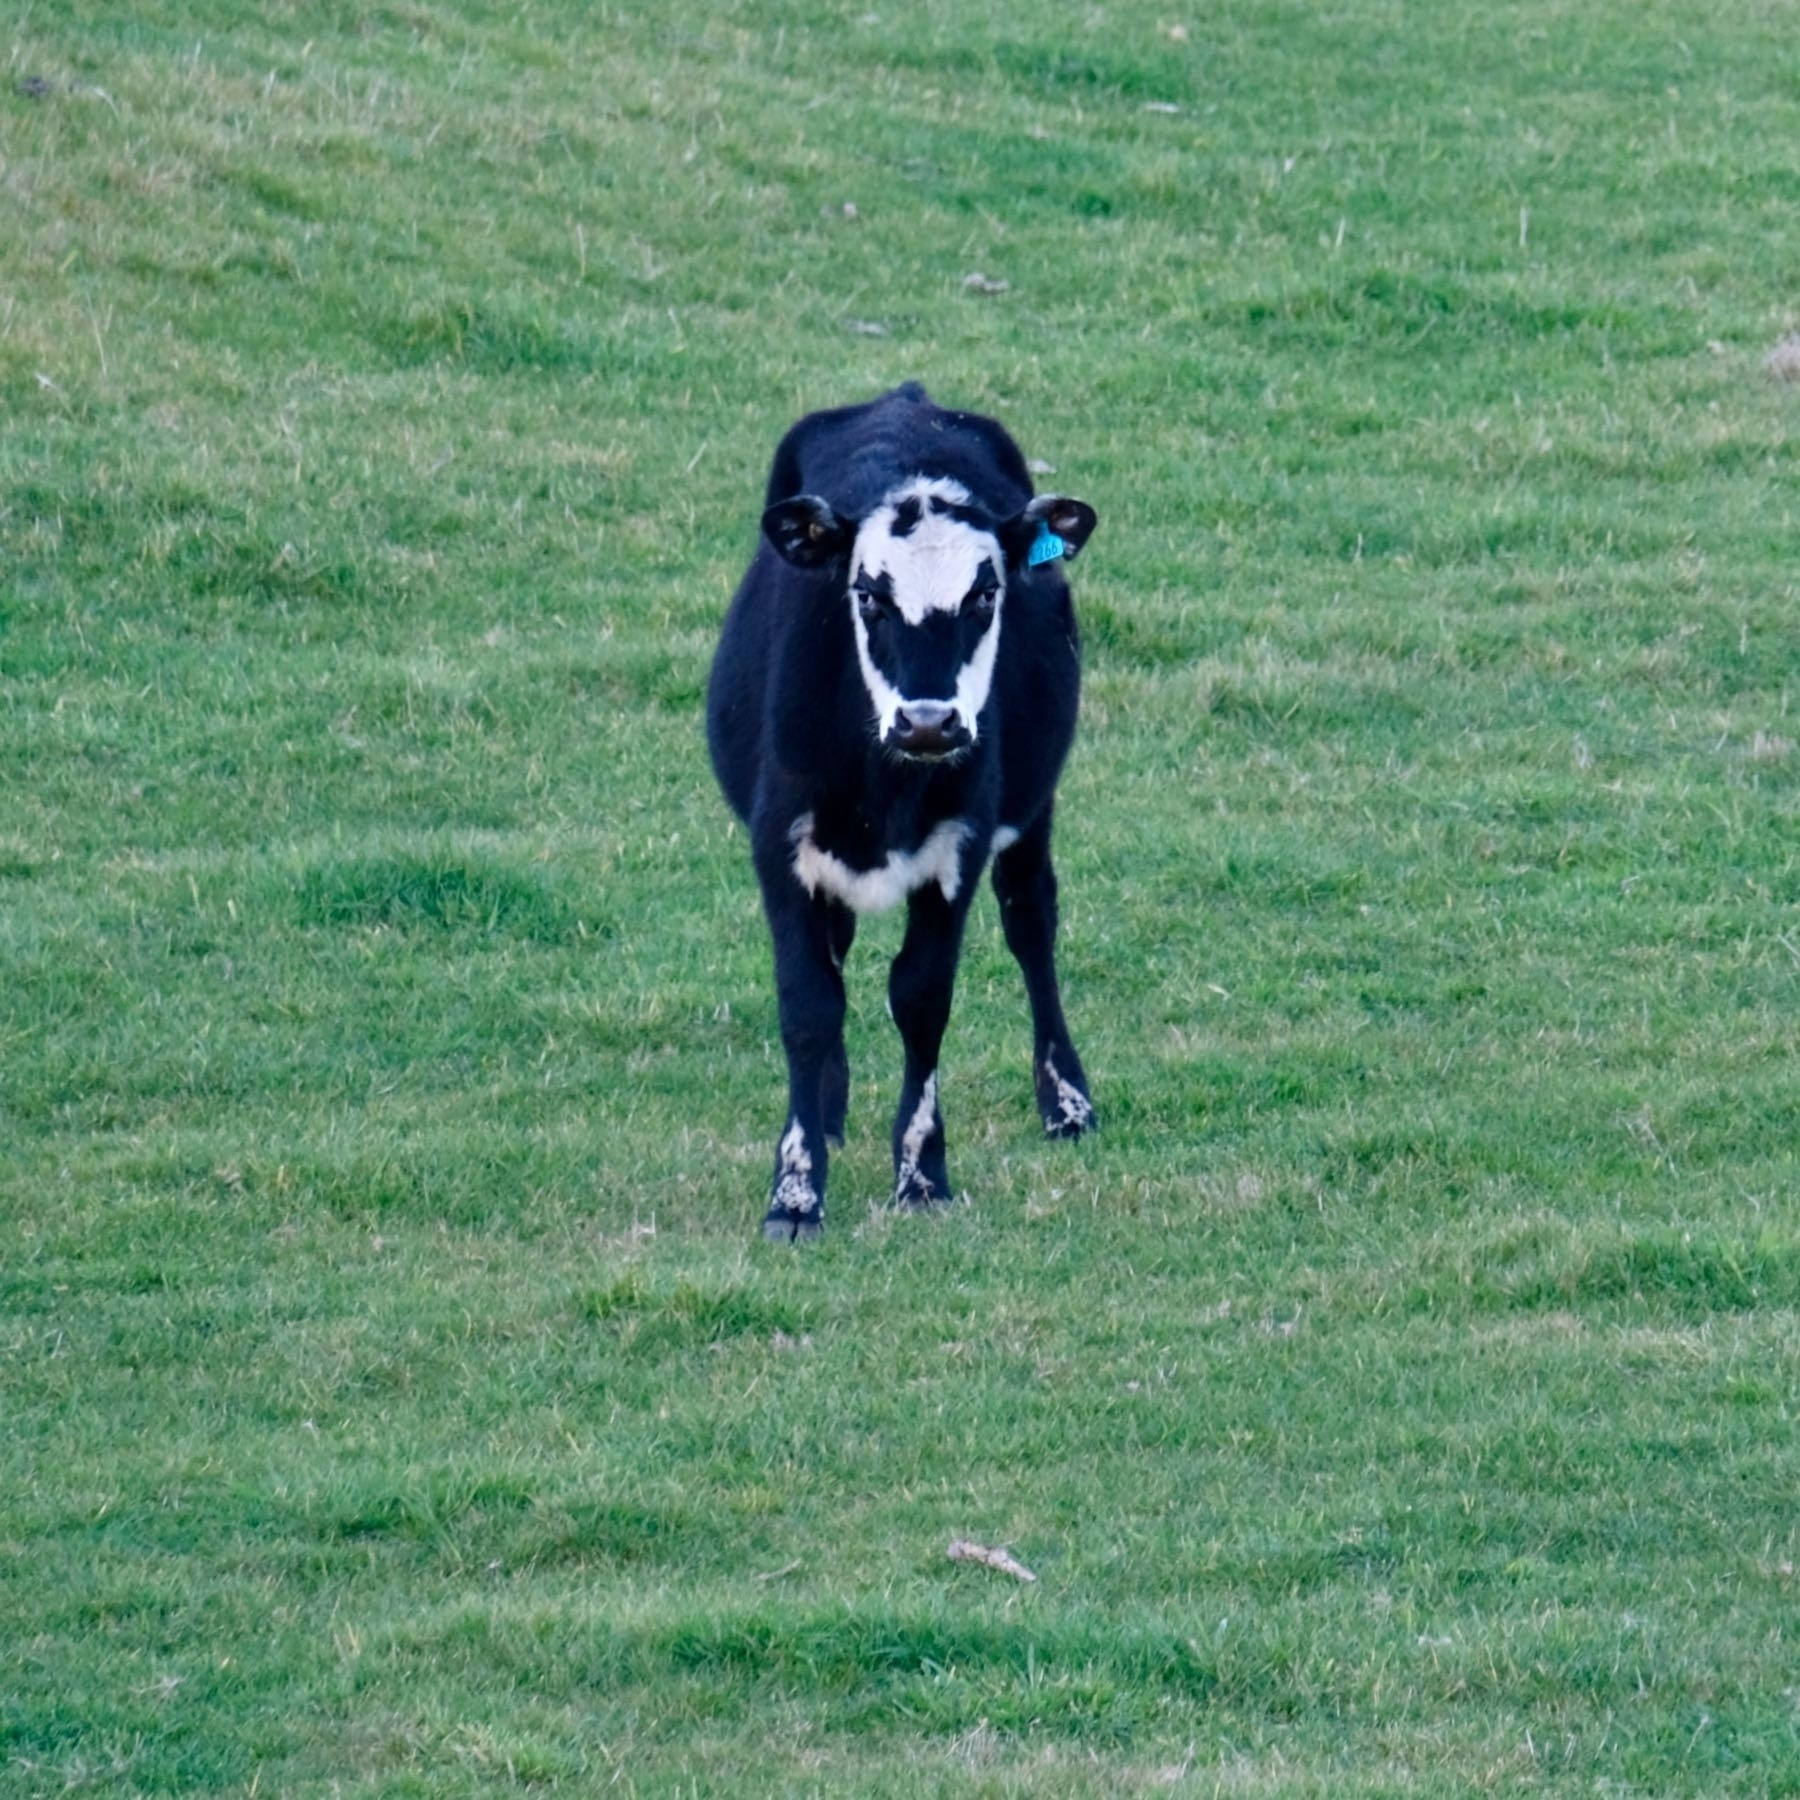 A mainly black cow with white markings on its head, which together make it hard to make out.